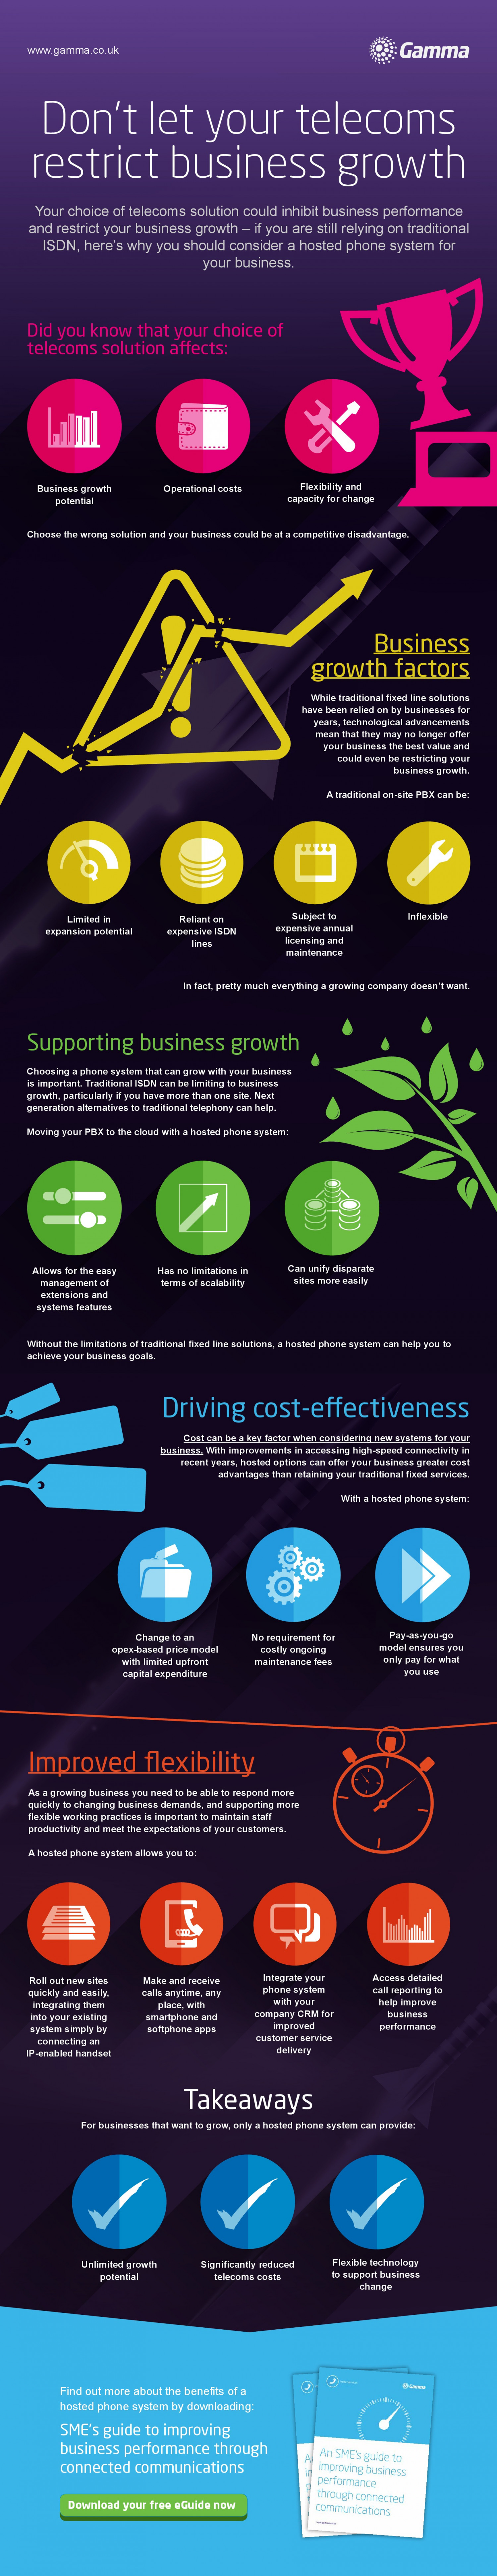 Don't Let Telecoms Restrict Business Growth Infographic